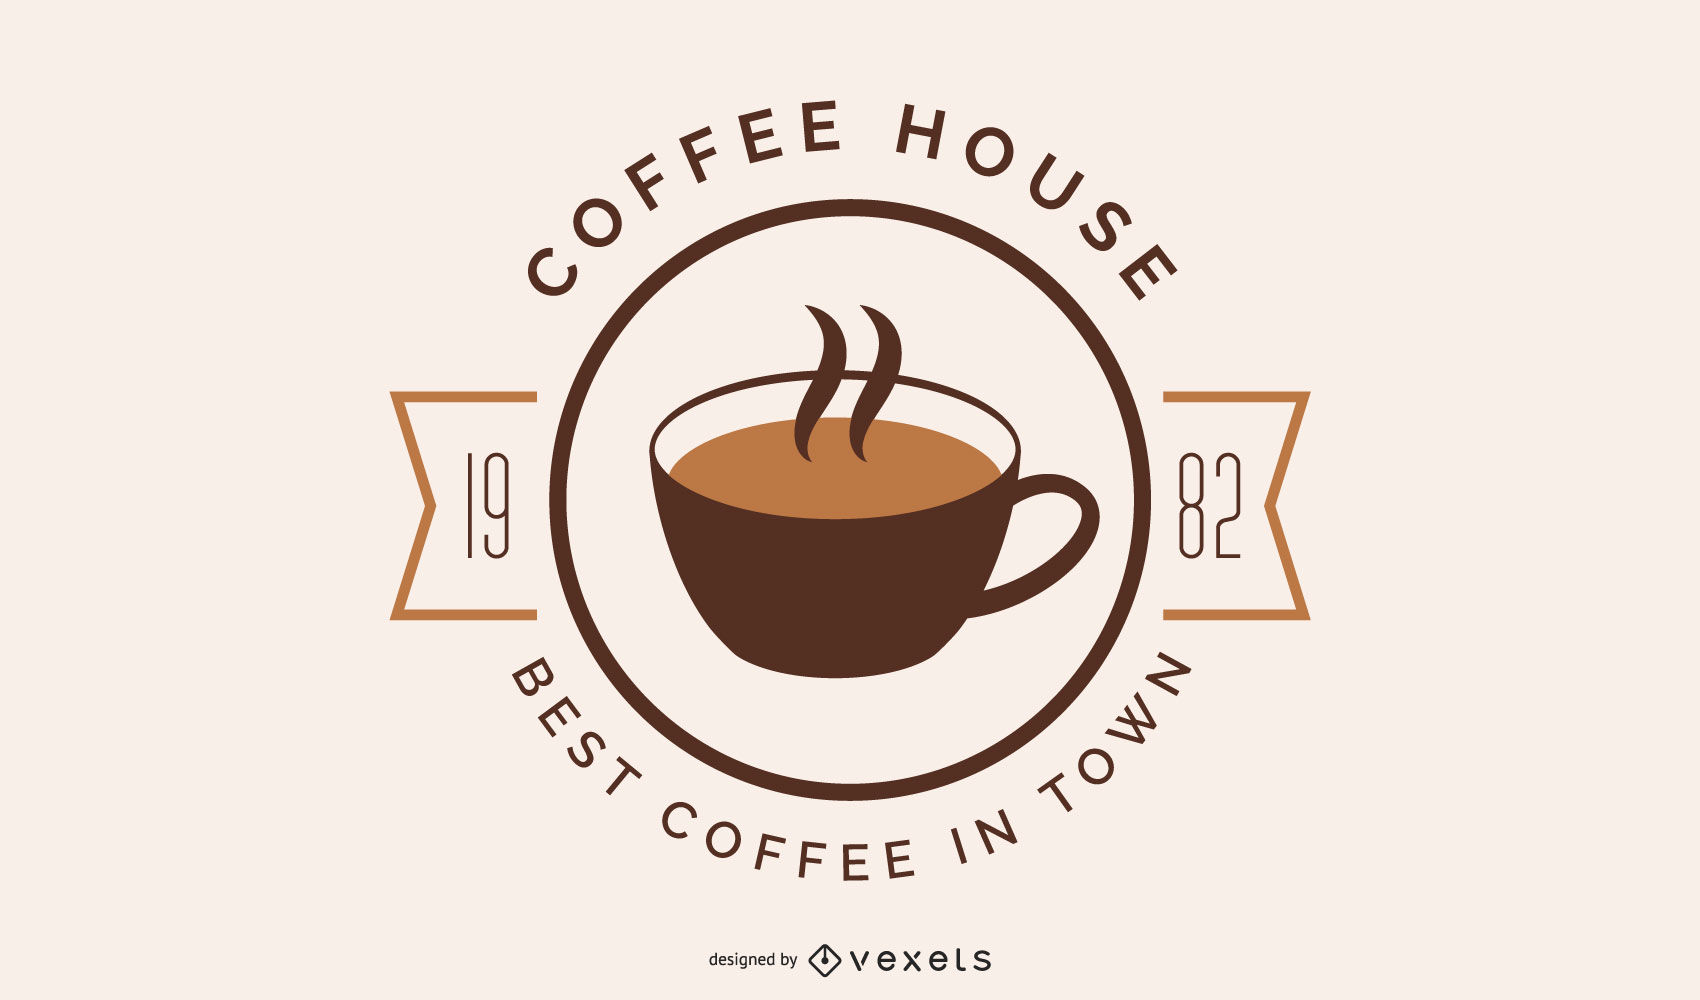 Coffee house logo design.